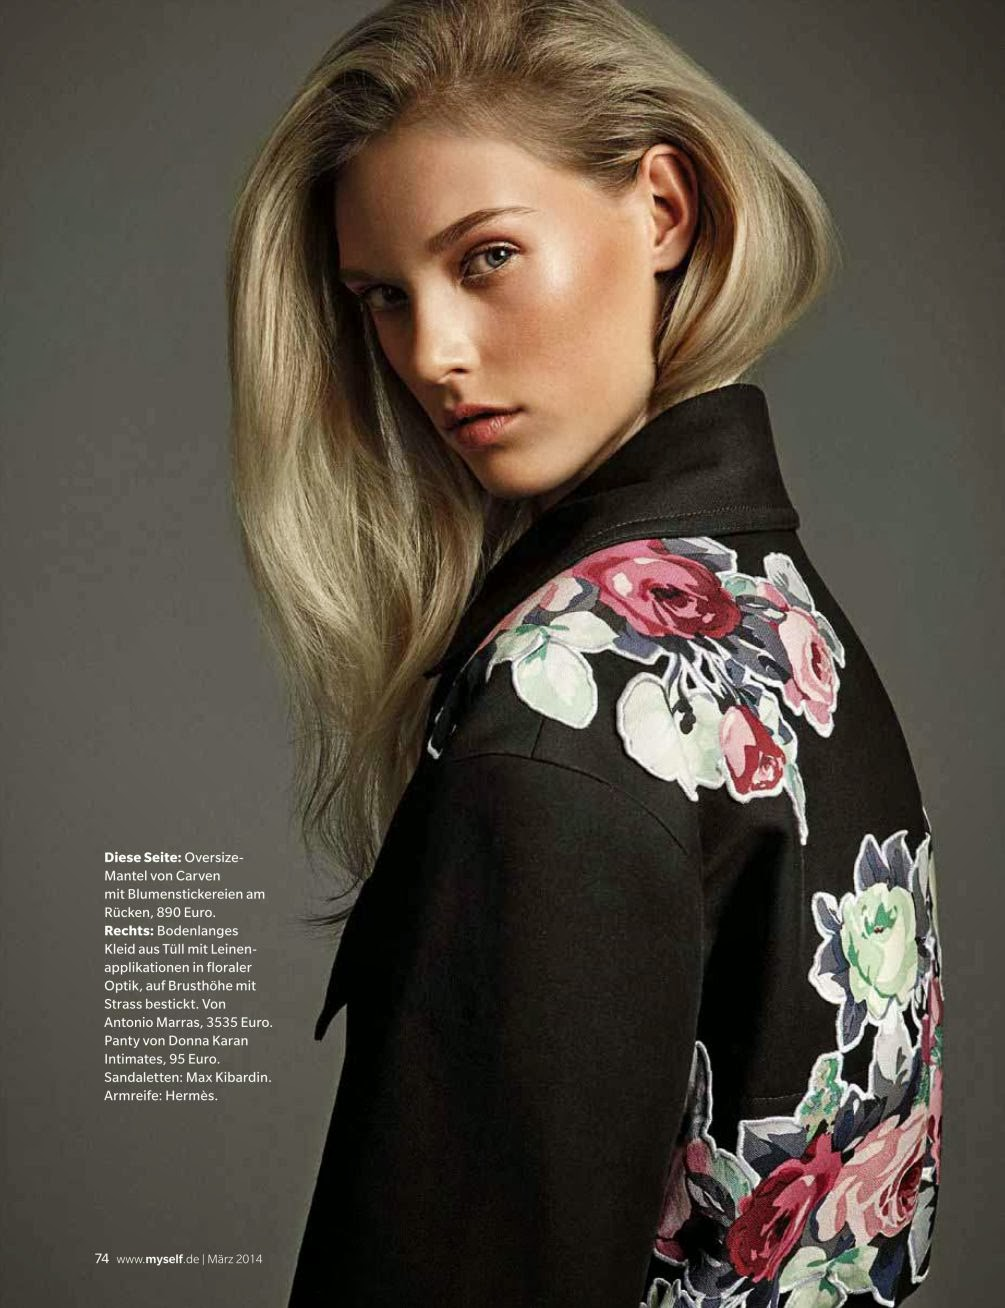 Charlene Hoegger HQ Pictures Myself Germany Magazine Photoshoot March 2014